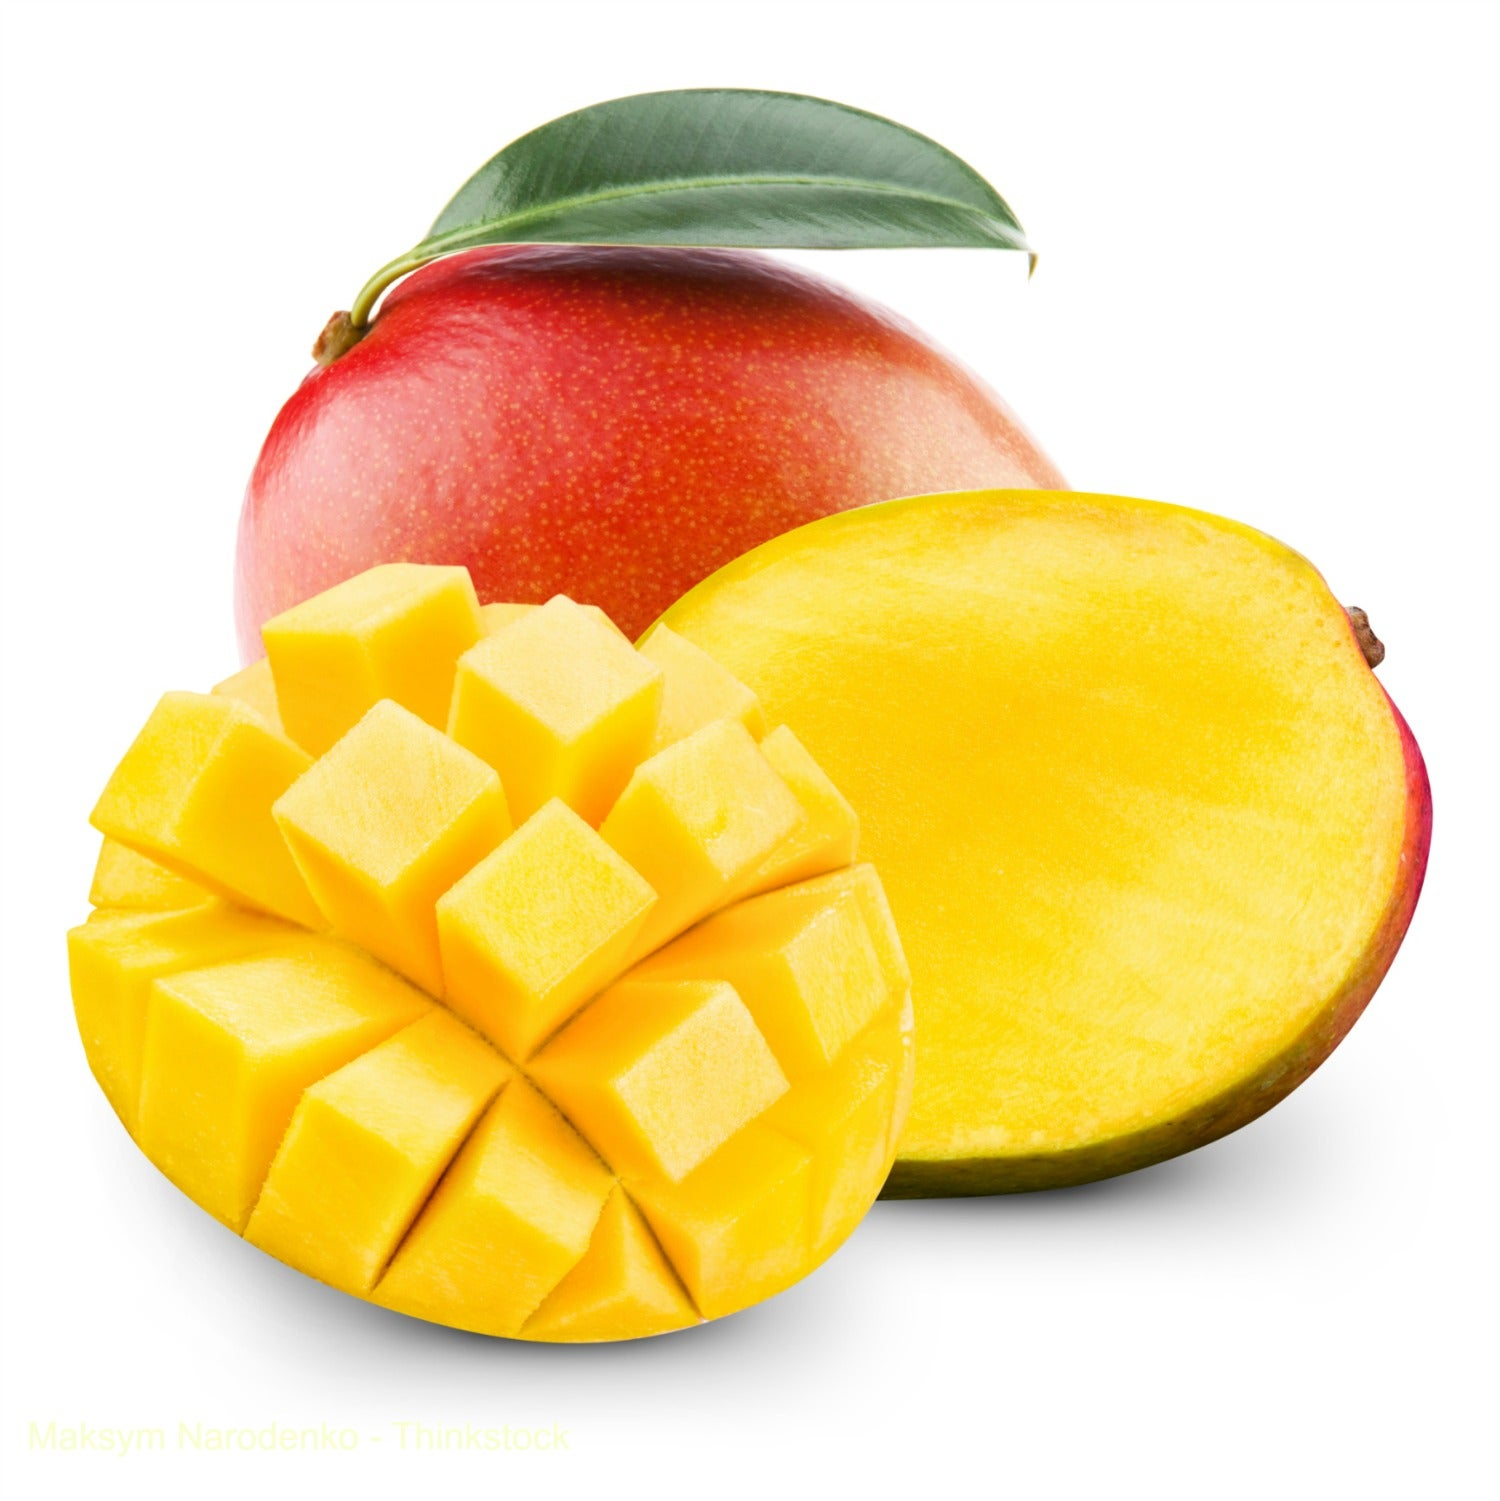 Mango Mania Is One of The Best Festivals You Can Attend